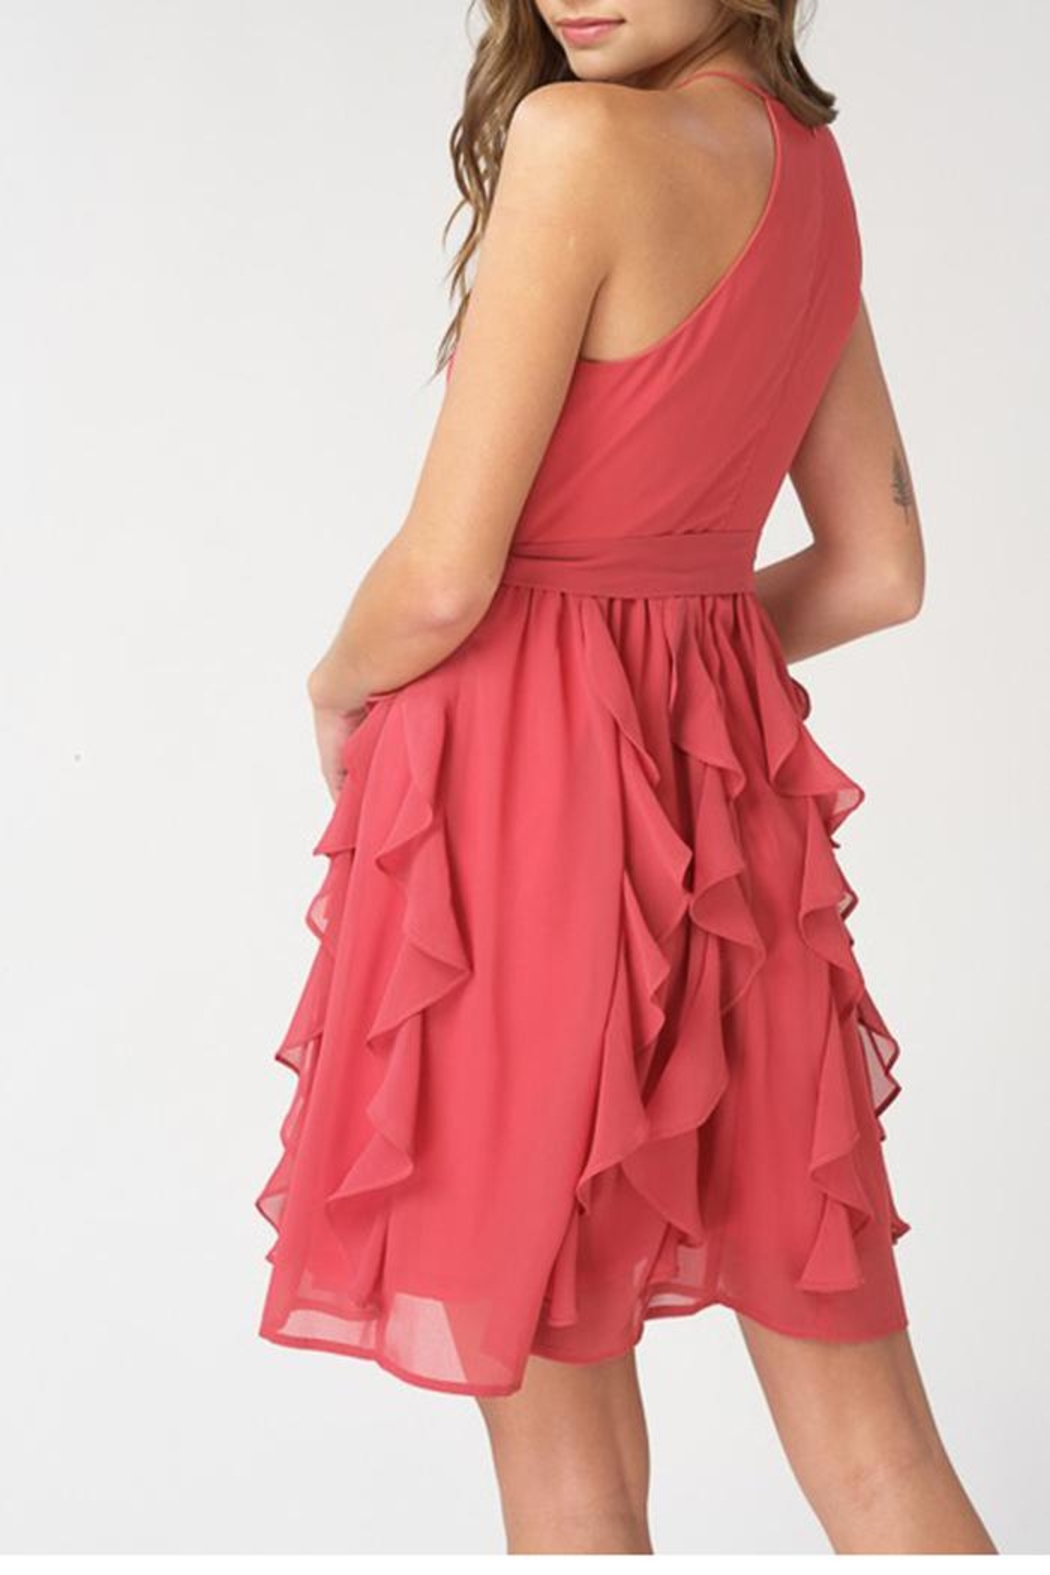 The Vintage Valet Teracotta Chiffon Dress - Front Full Image